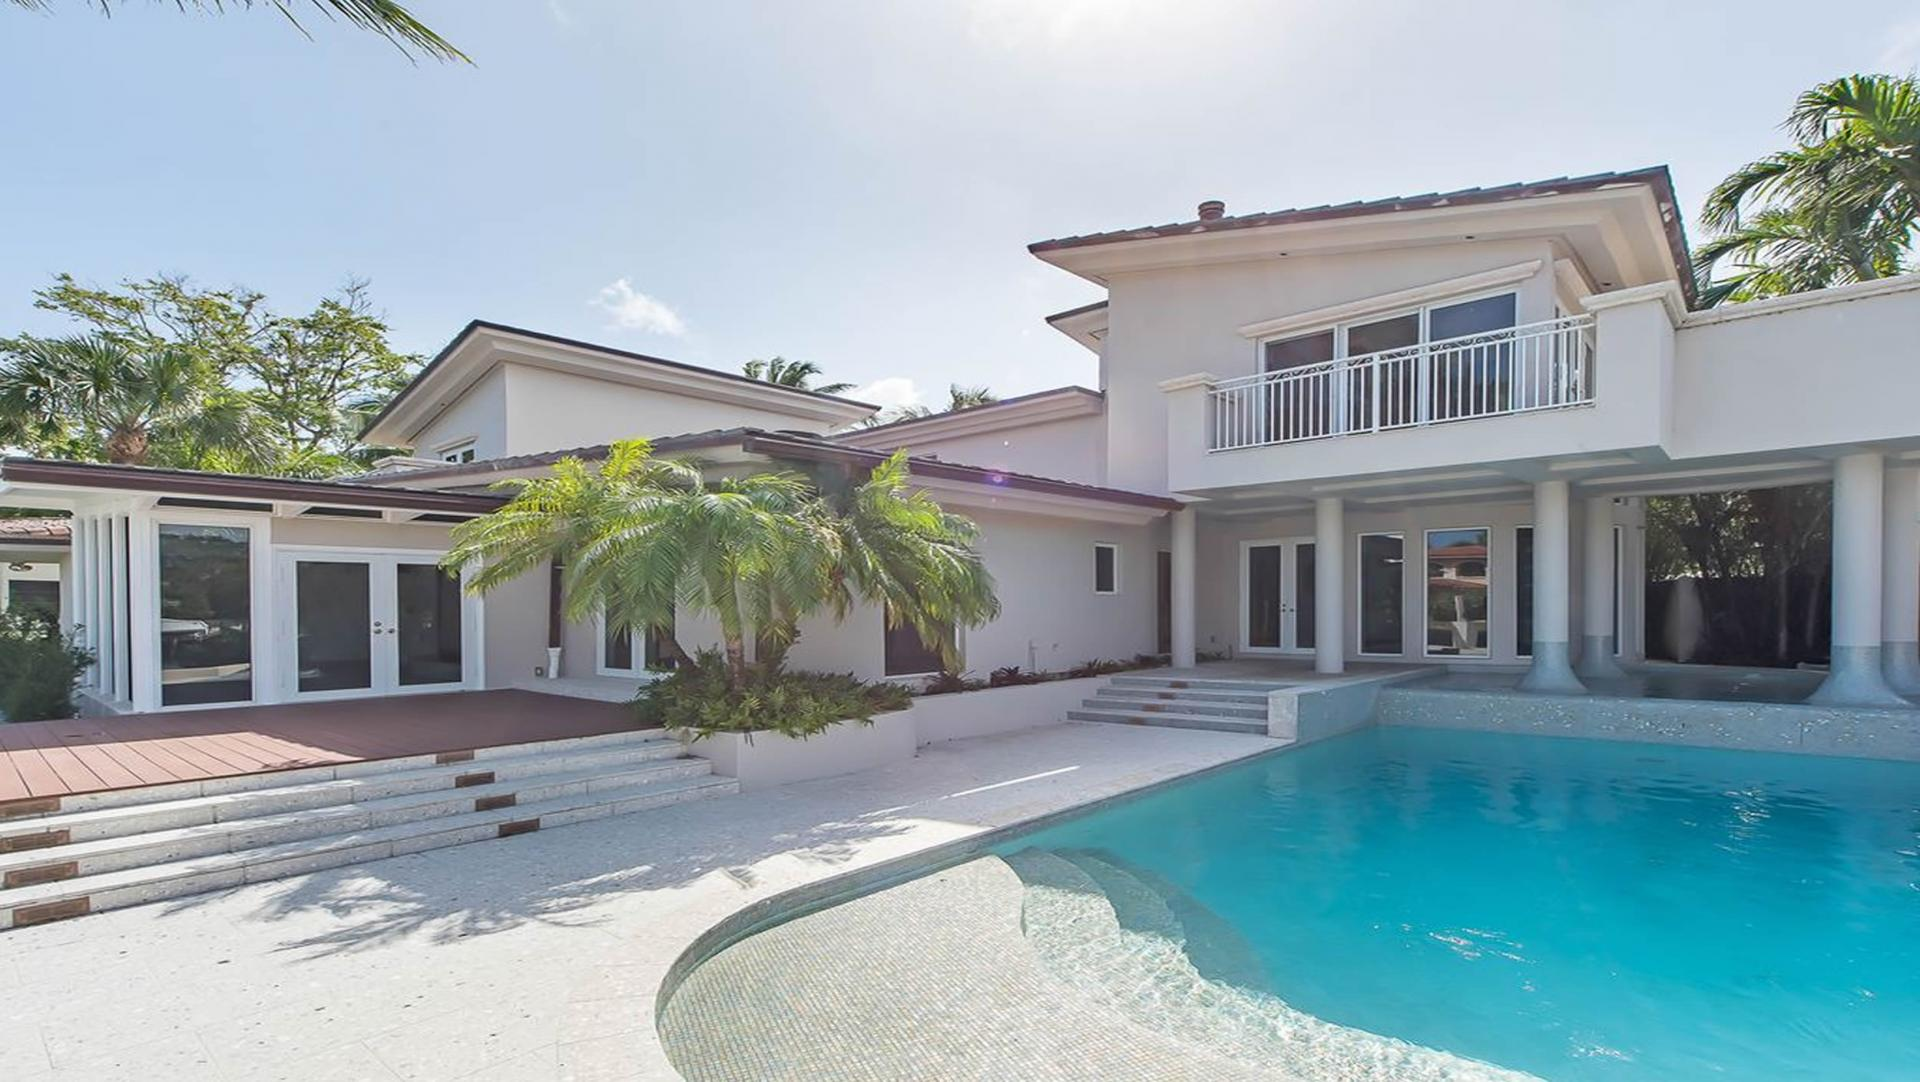 Rent This Downtown Fort Lauderdale Vacation Rental House